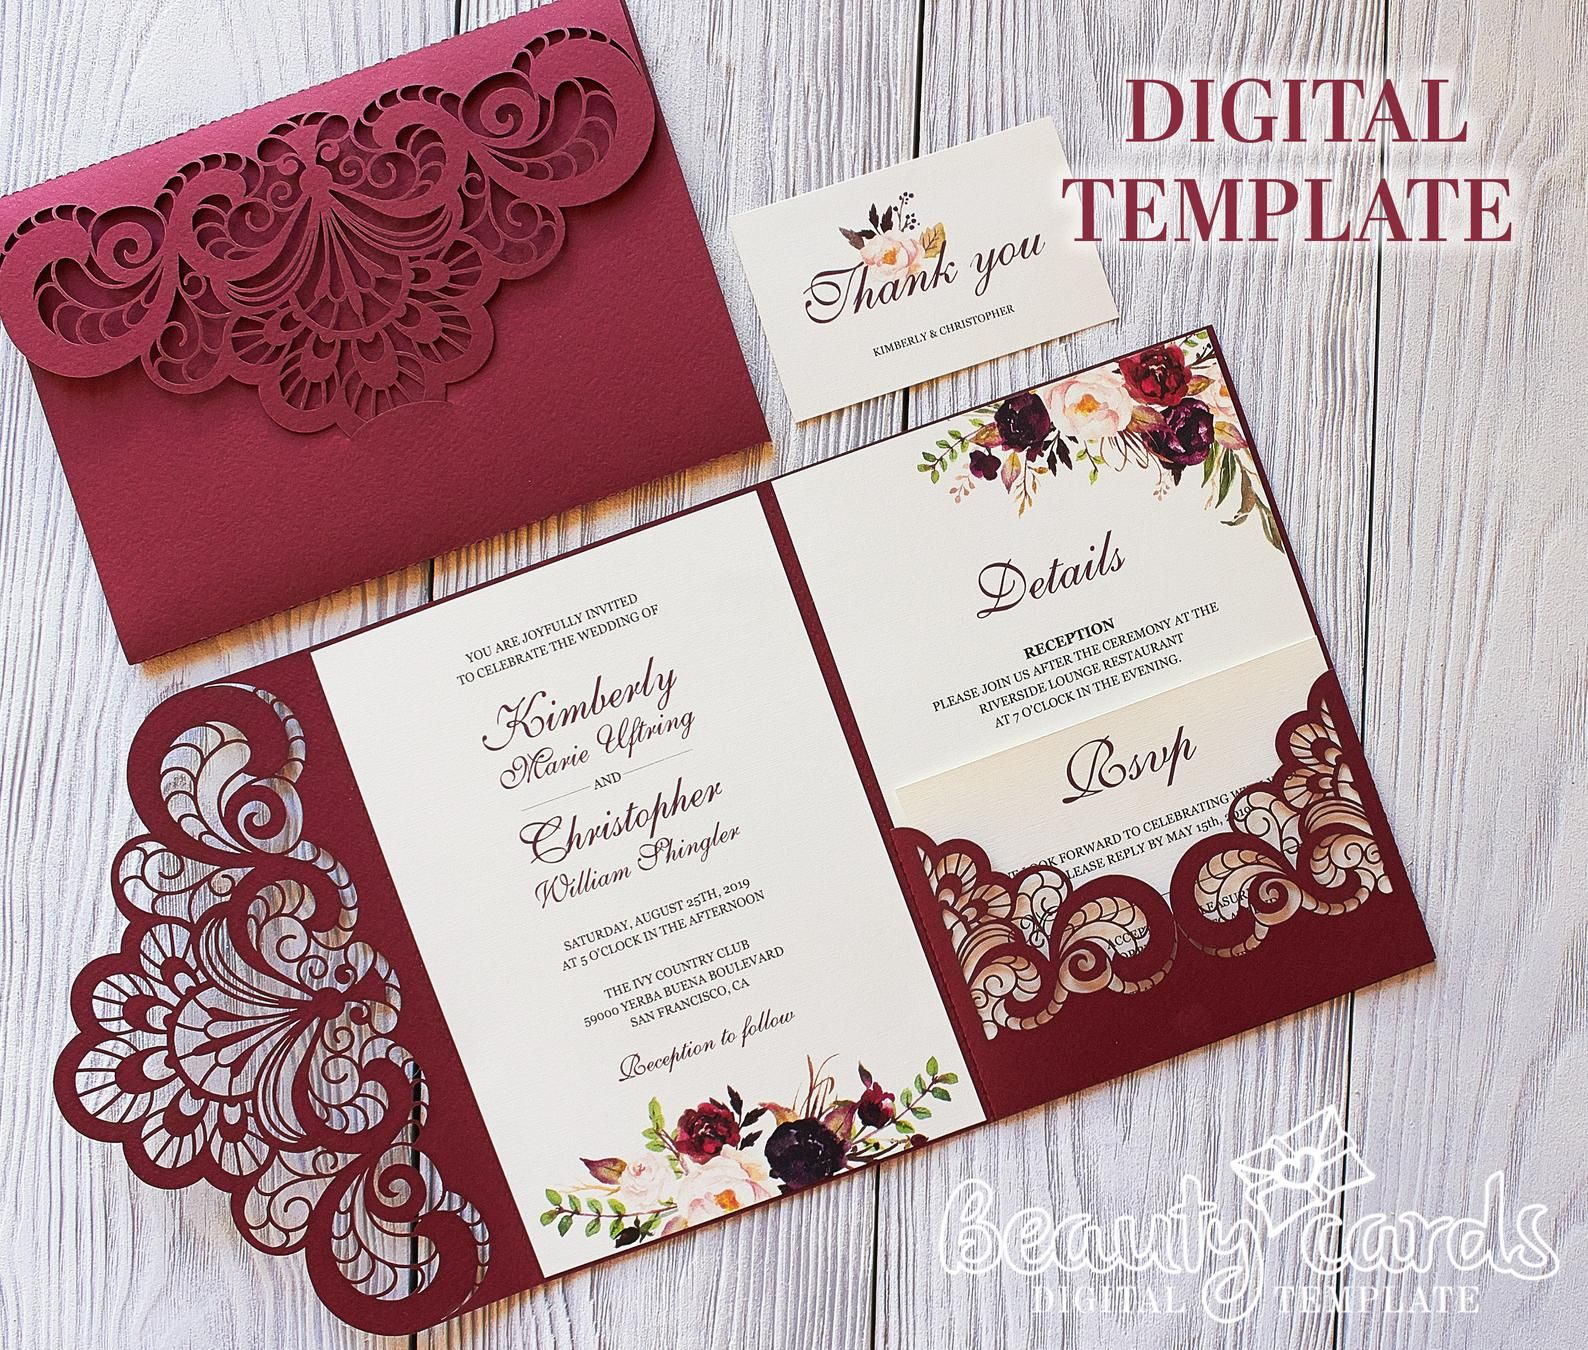 Pin on Wedding invitations diy